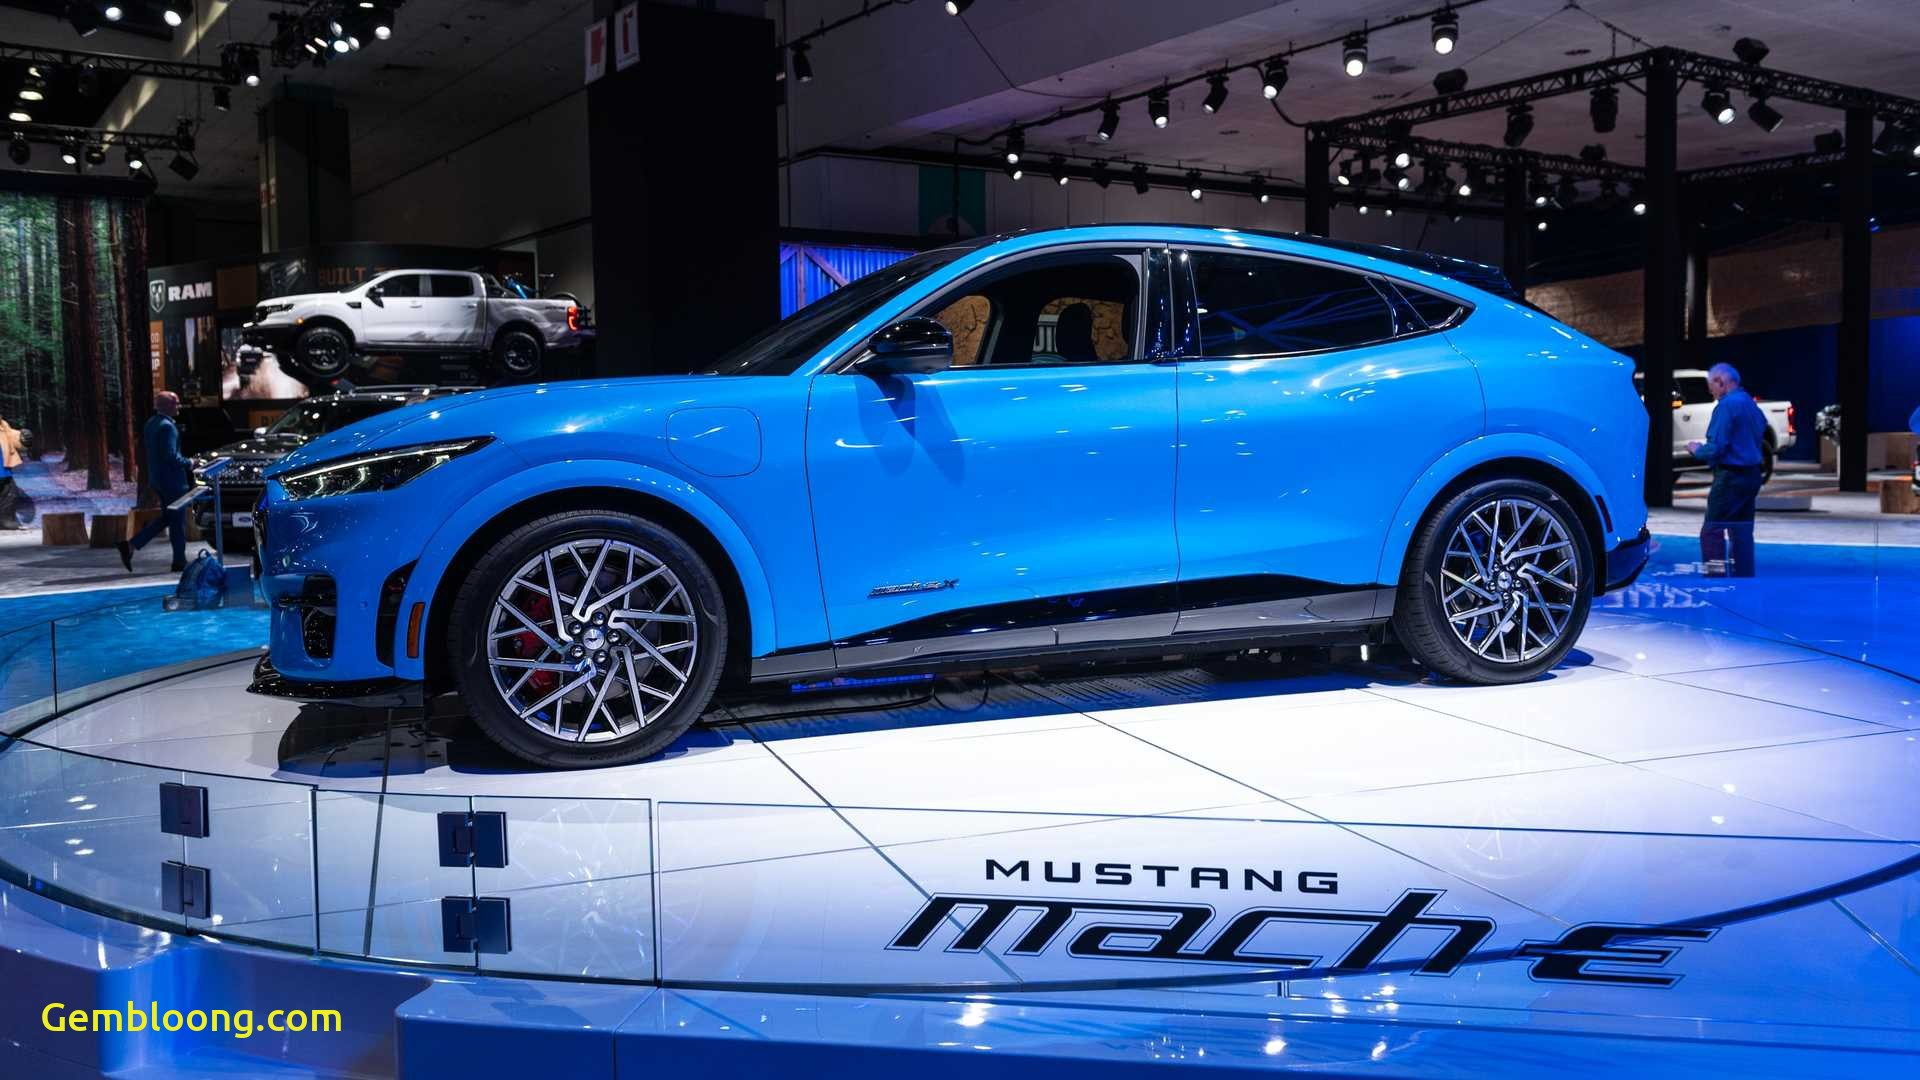 Mustang Mach E Fresh ford Reveals Interesting Facts About Mustang Mach E Reservations